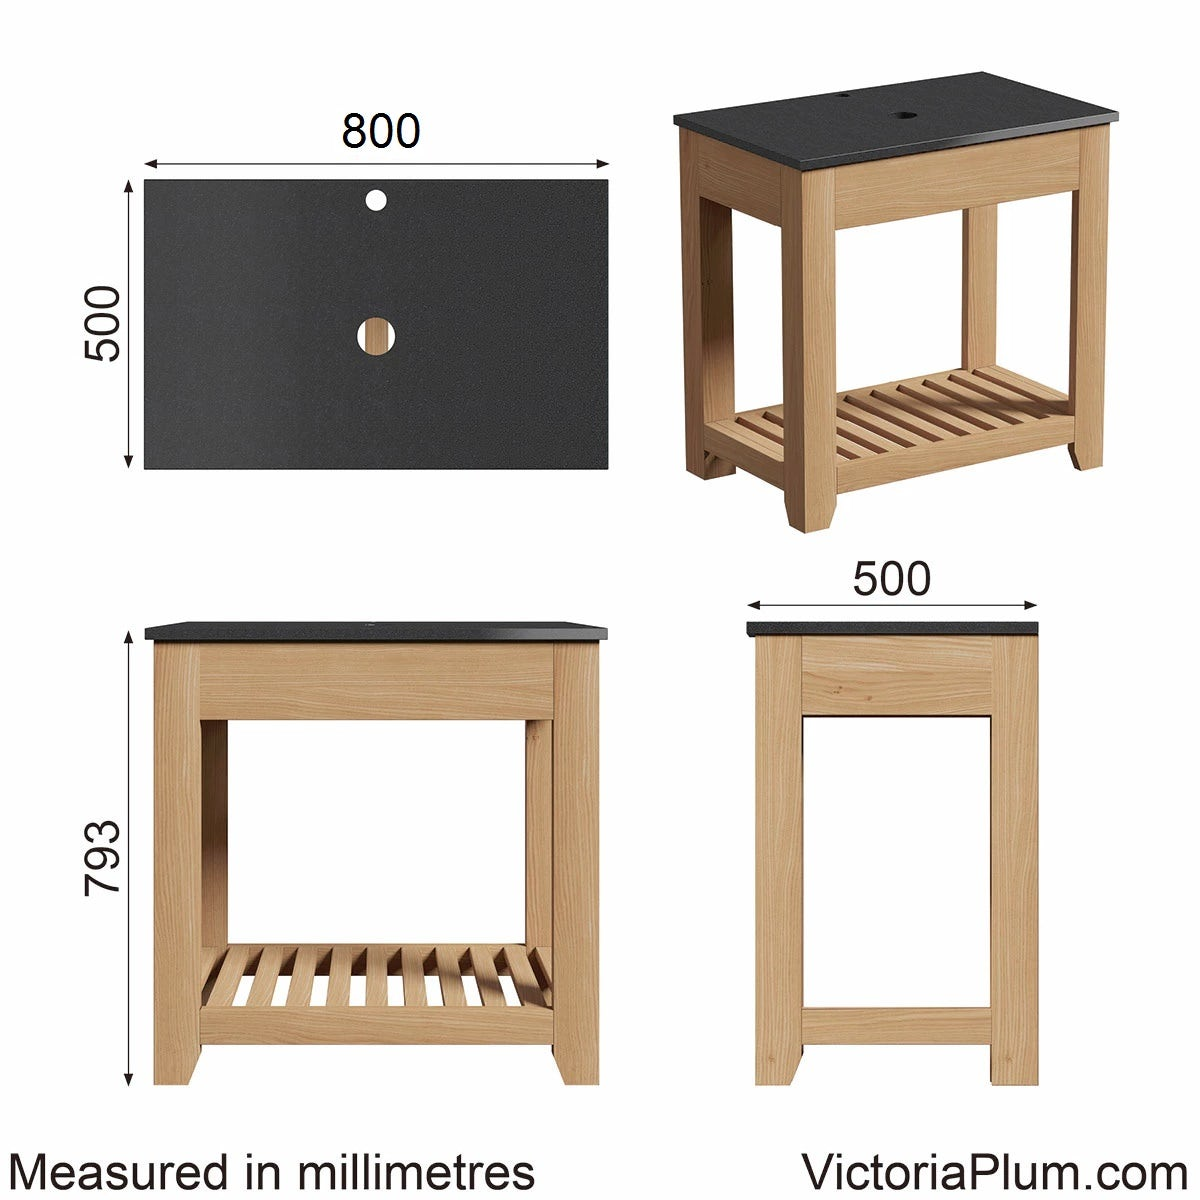 Dimensions for The Bath Co. Hoxton oak washstand with black marble top 800mm